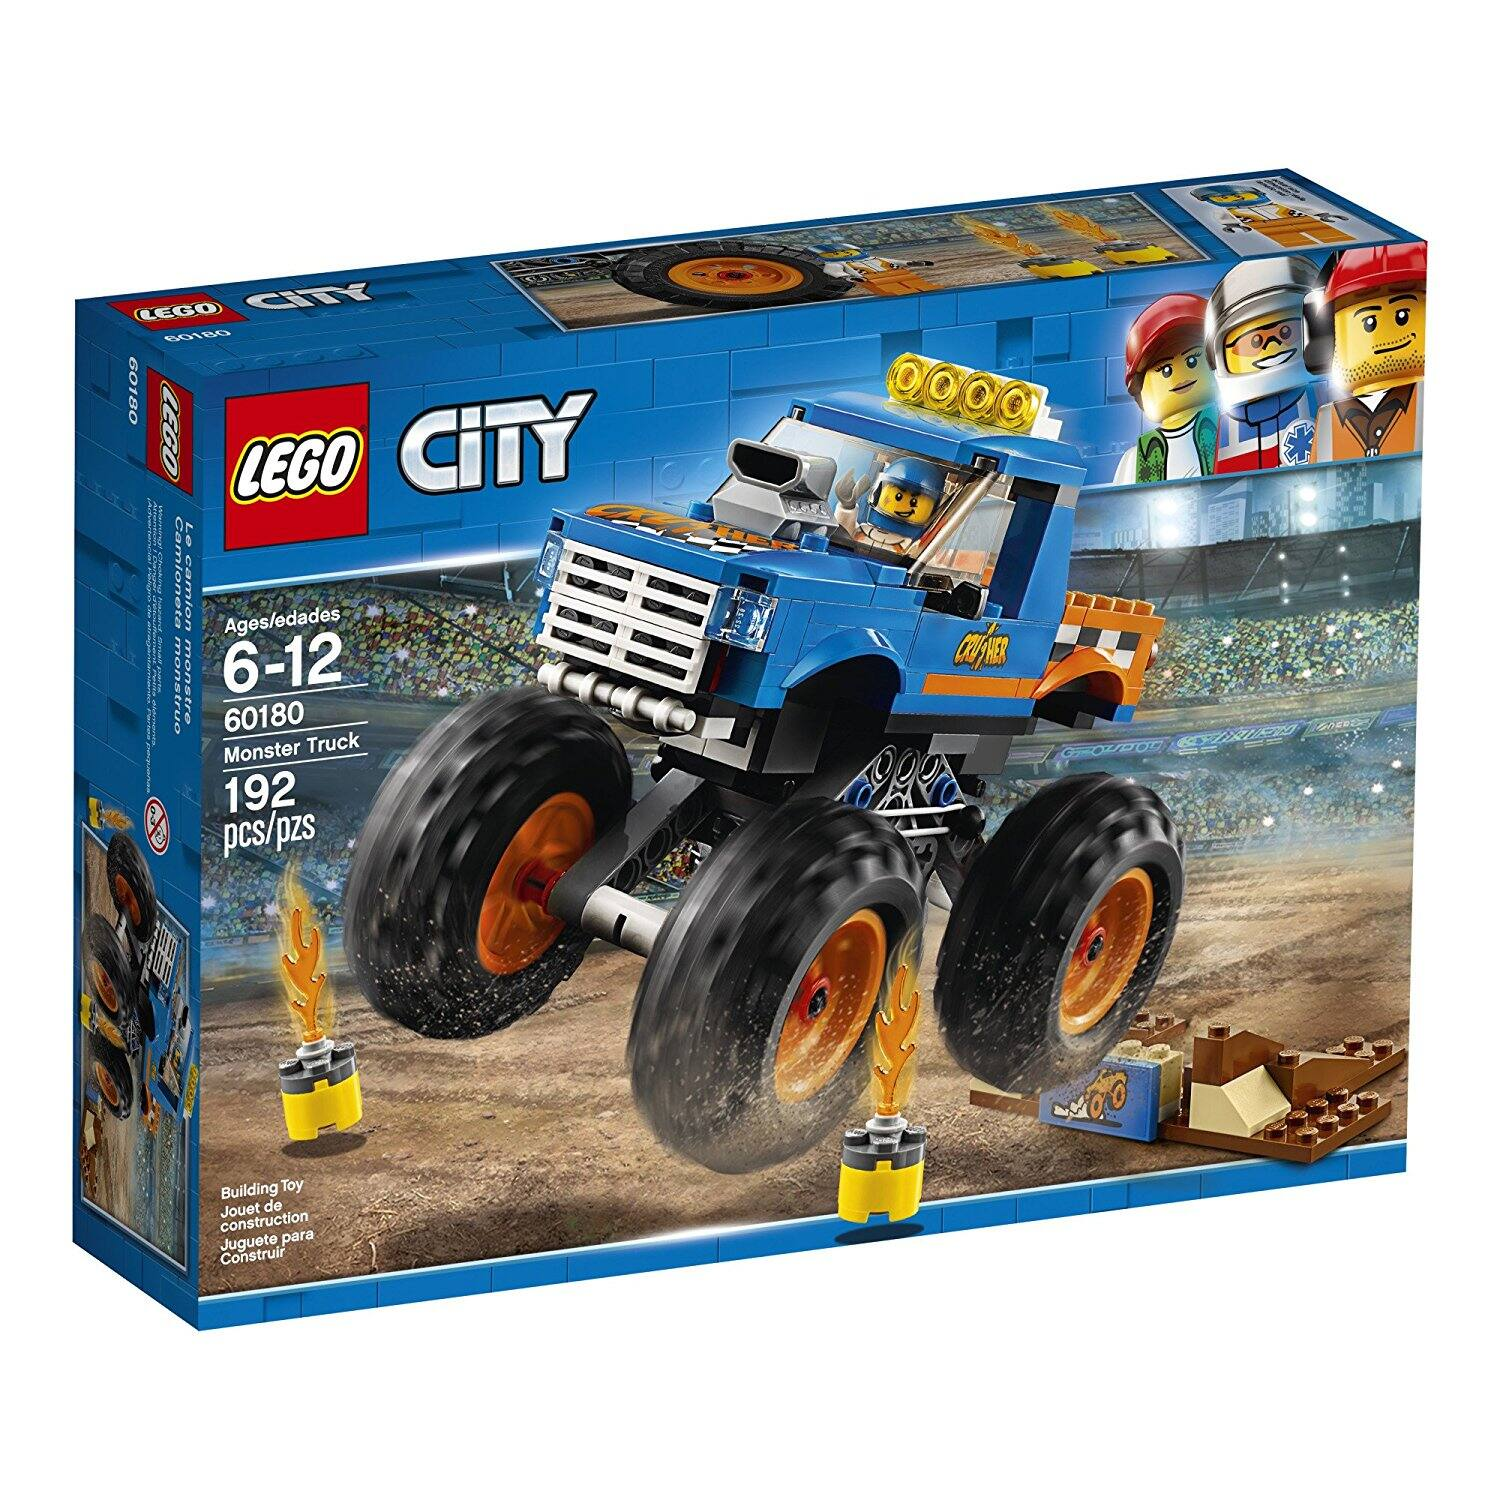 a56206ad9a LEGO City Great Vehicles Monster Truck - Slickdeals.net